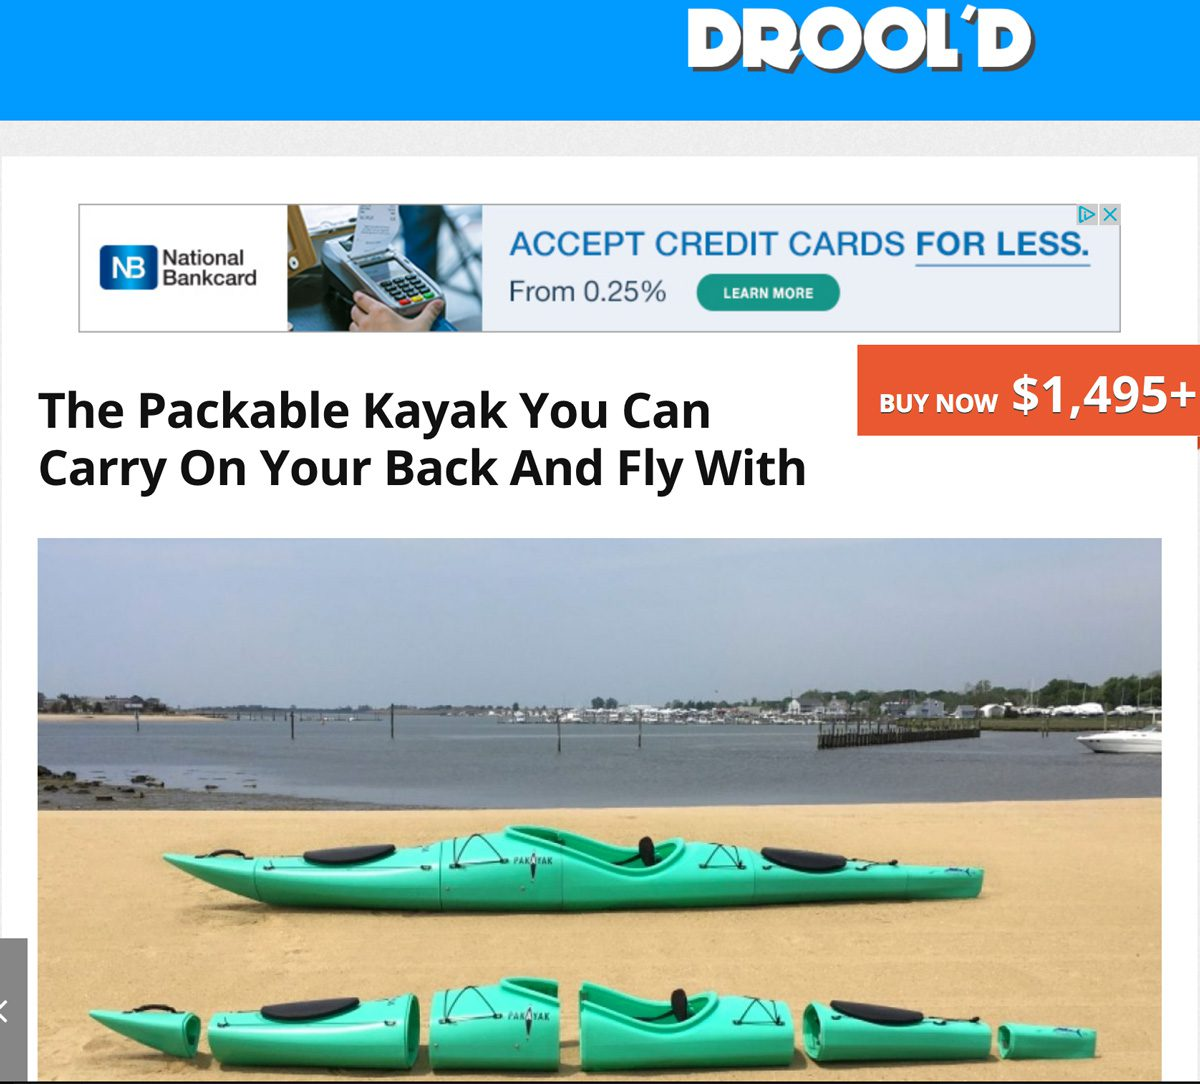 Drool'd: The Packable Kayak You Can Carry On Your Back And Fly With